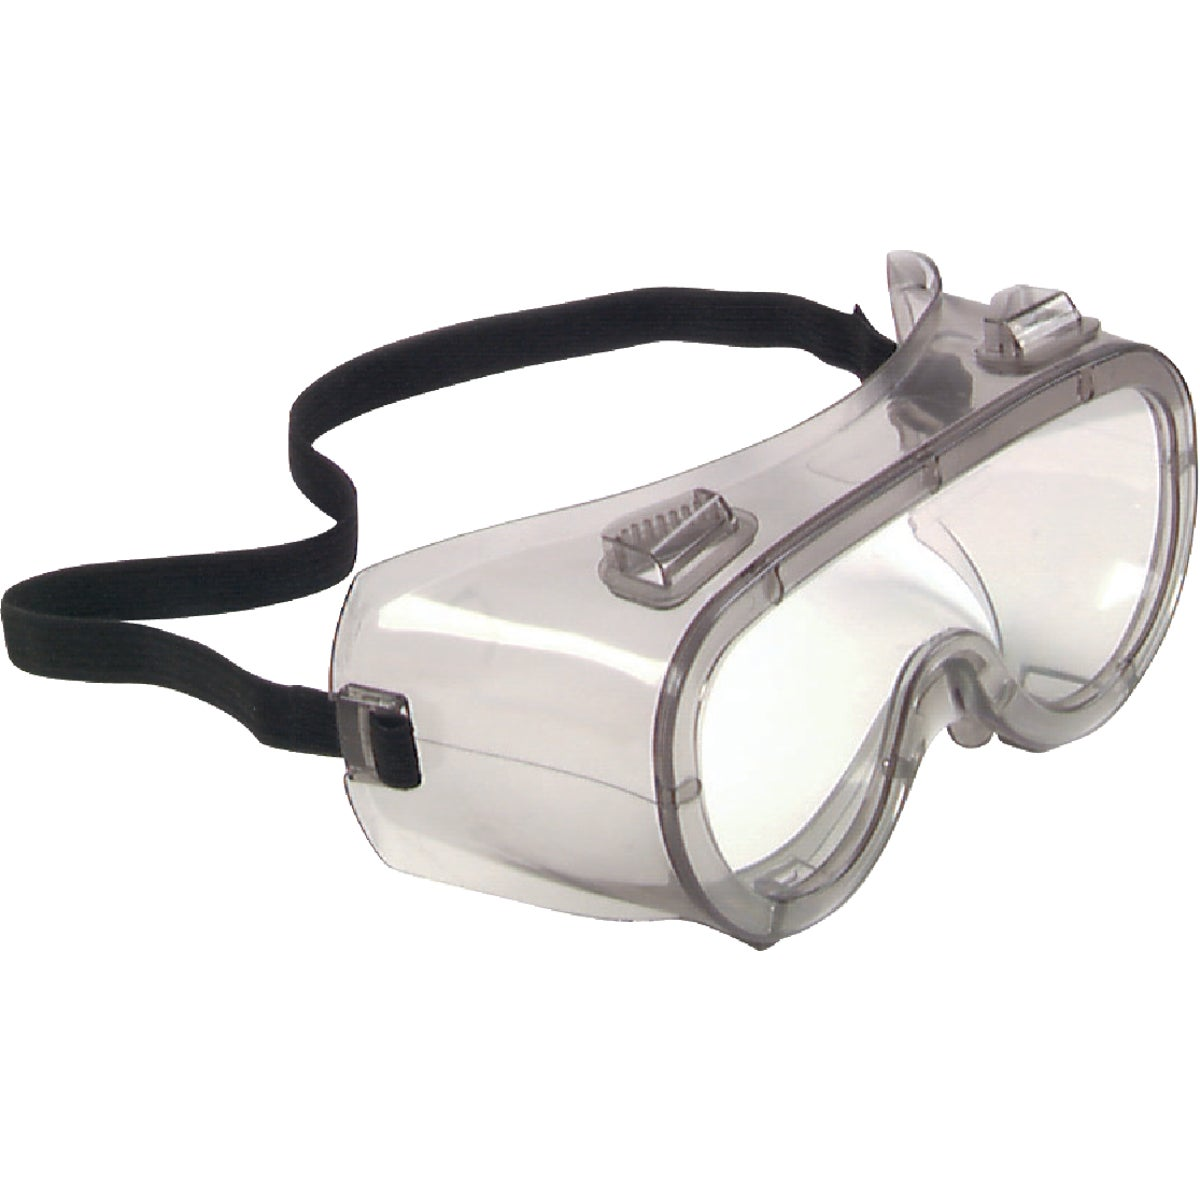 CHEMICAL SAFETY GOGGLES - 10031205 by Msa Safety